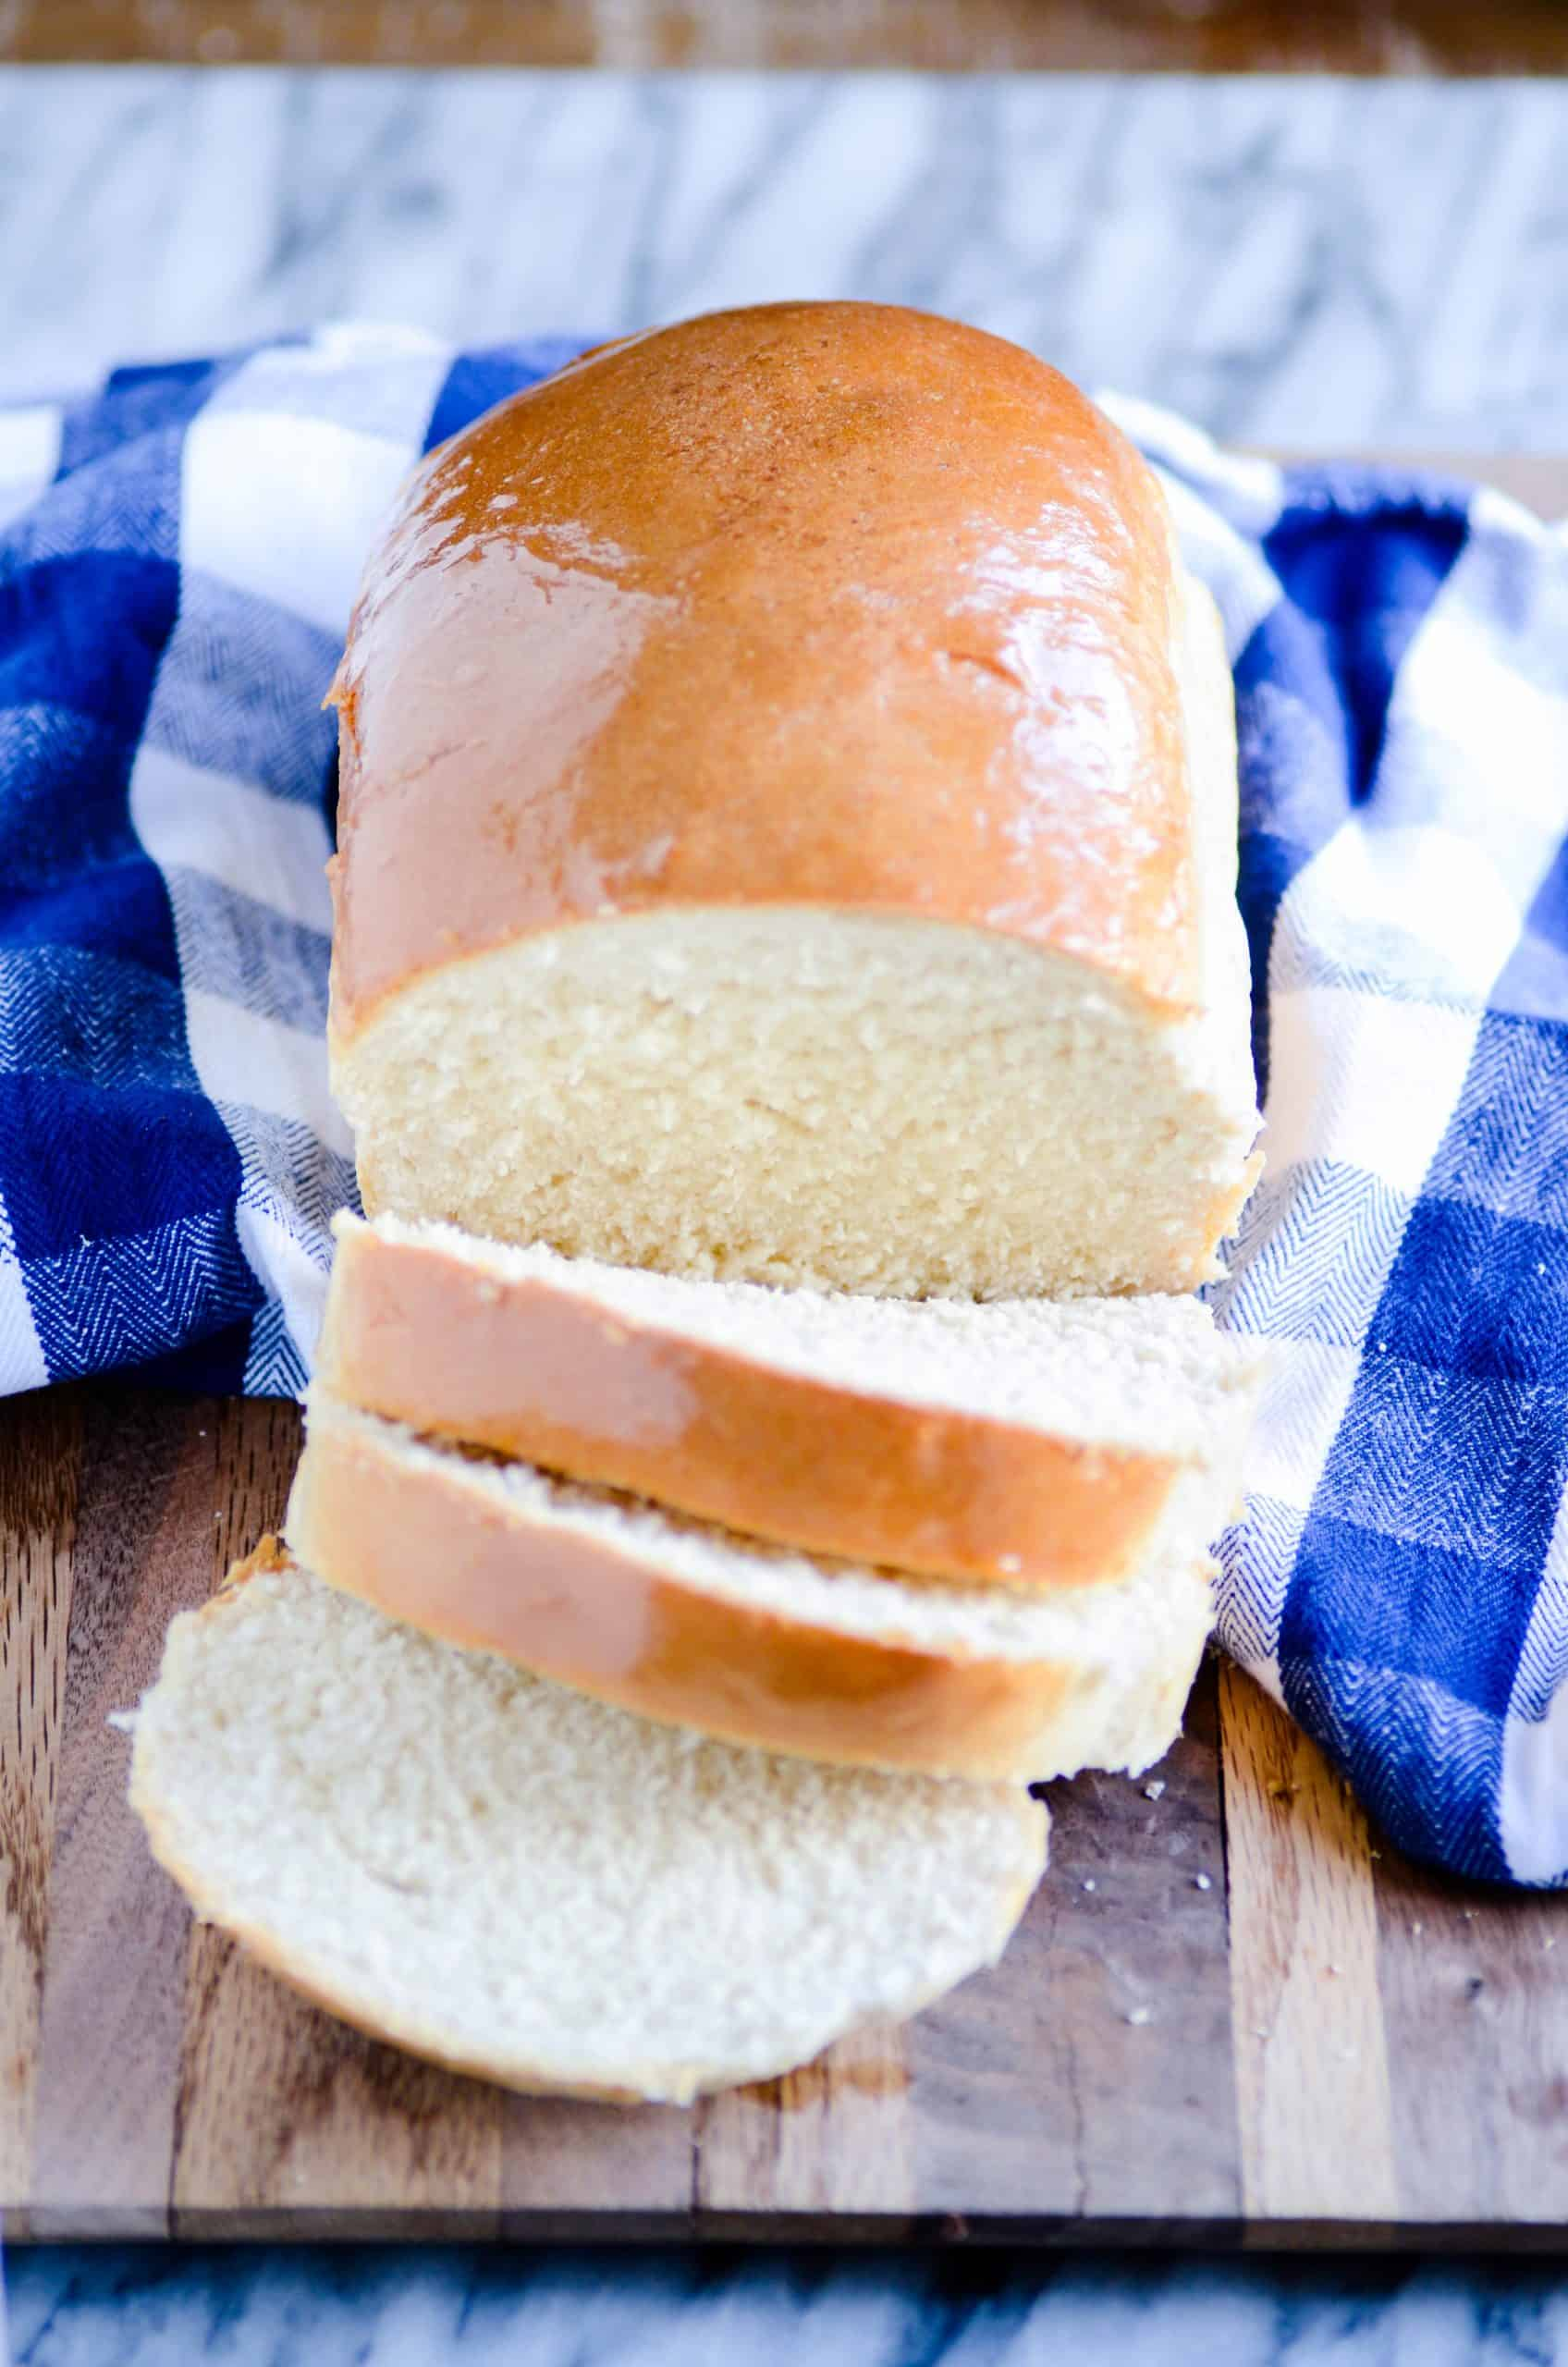 This simple recipe for homemade sandwich bread is a family favorite! Use it for sandwiches, french toast, or smother it with butter and eat it fresh and warm!